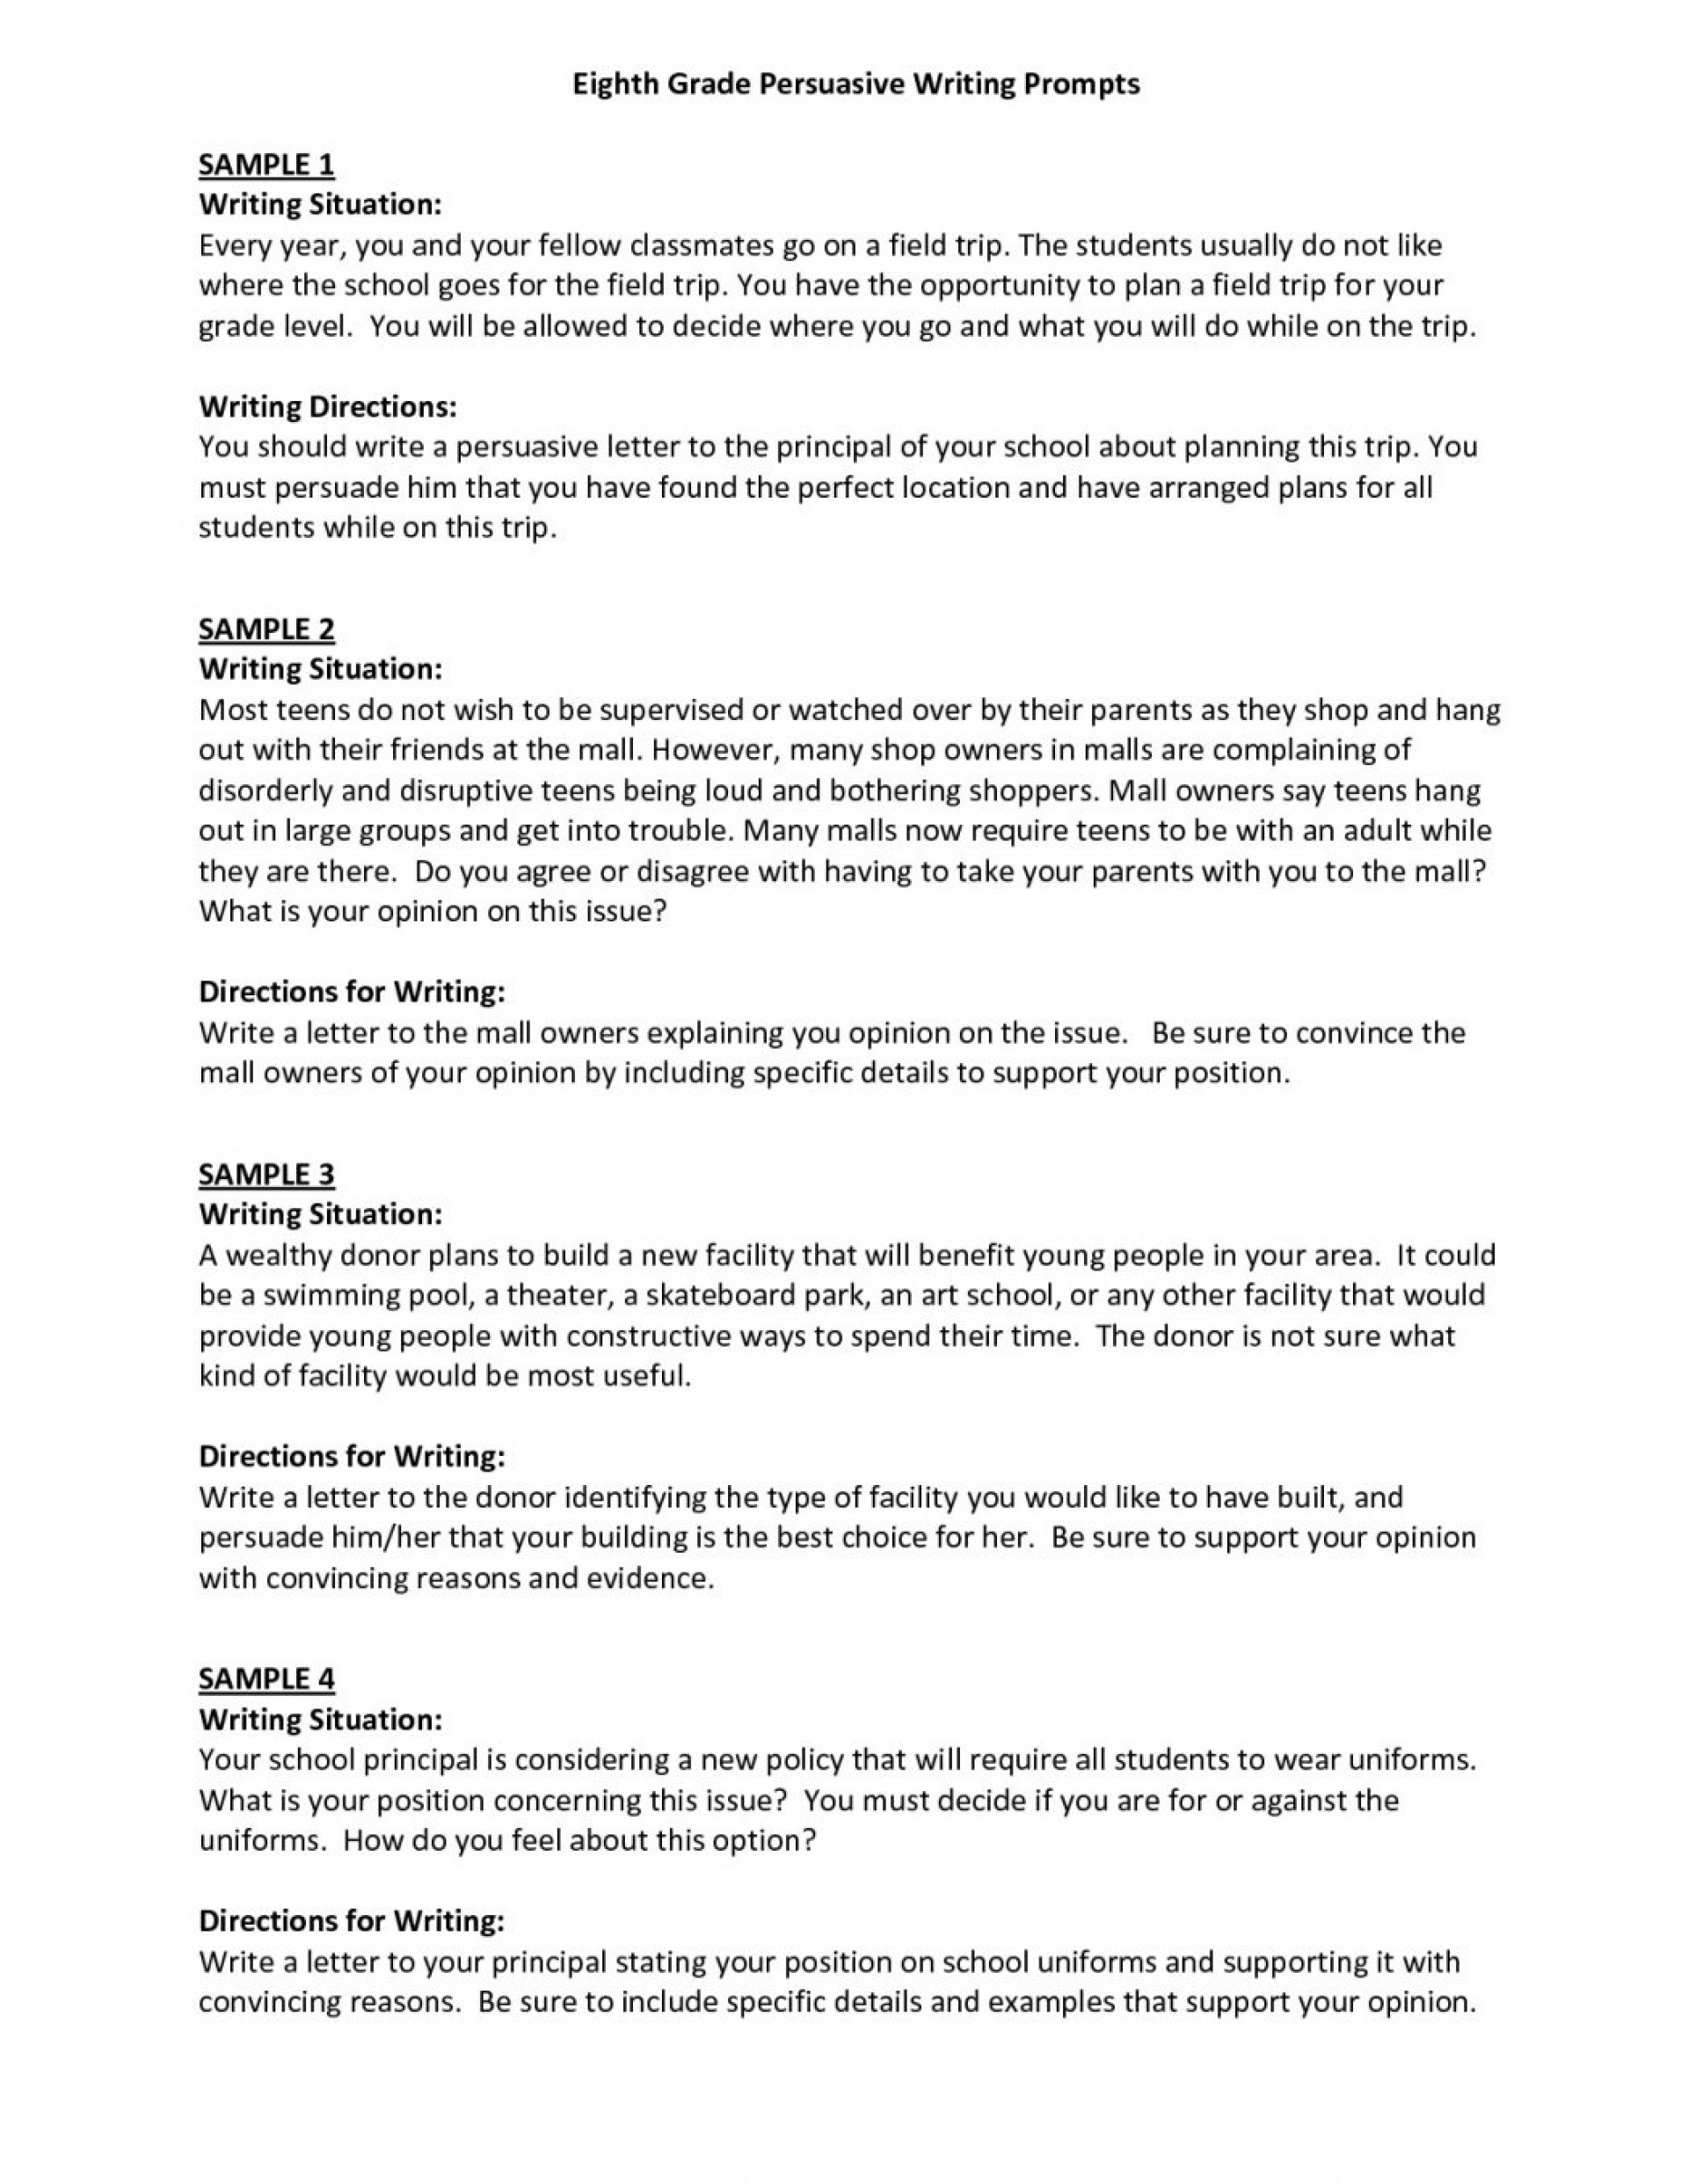 017 Argumentative Essay Topics For Middle School Writings And Essays High Students Character Throughout Ar Withicles Pdf 1048x1356 Example About Formidable Art Related To Artificial Intelligence Philosophy Of Performing Arts 1920